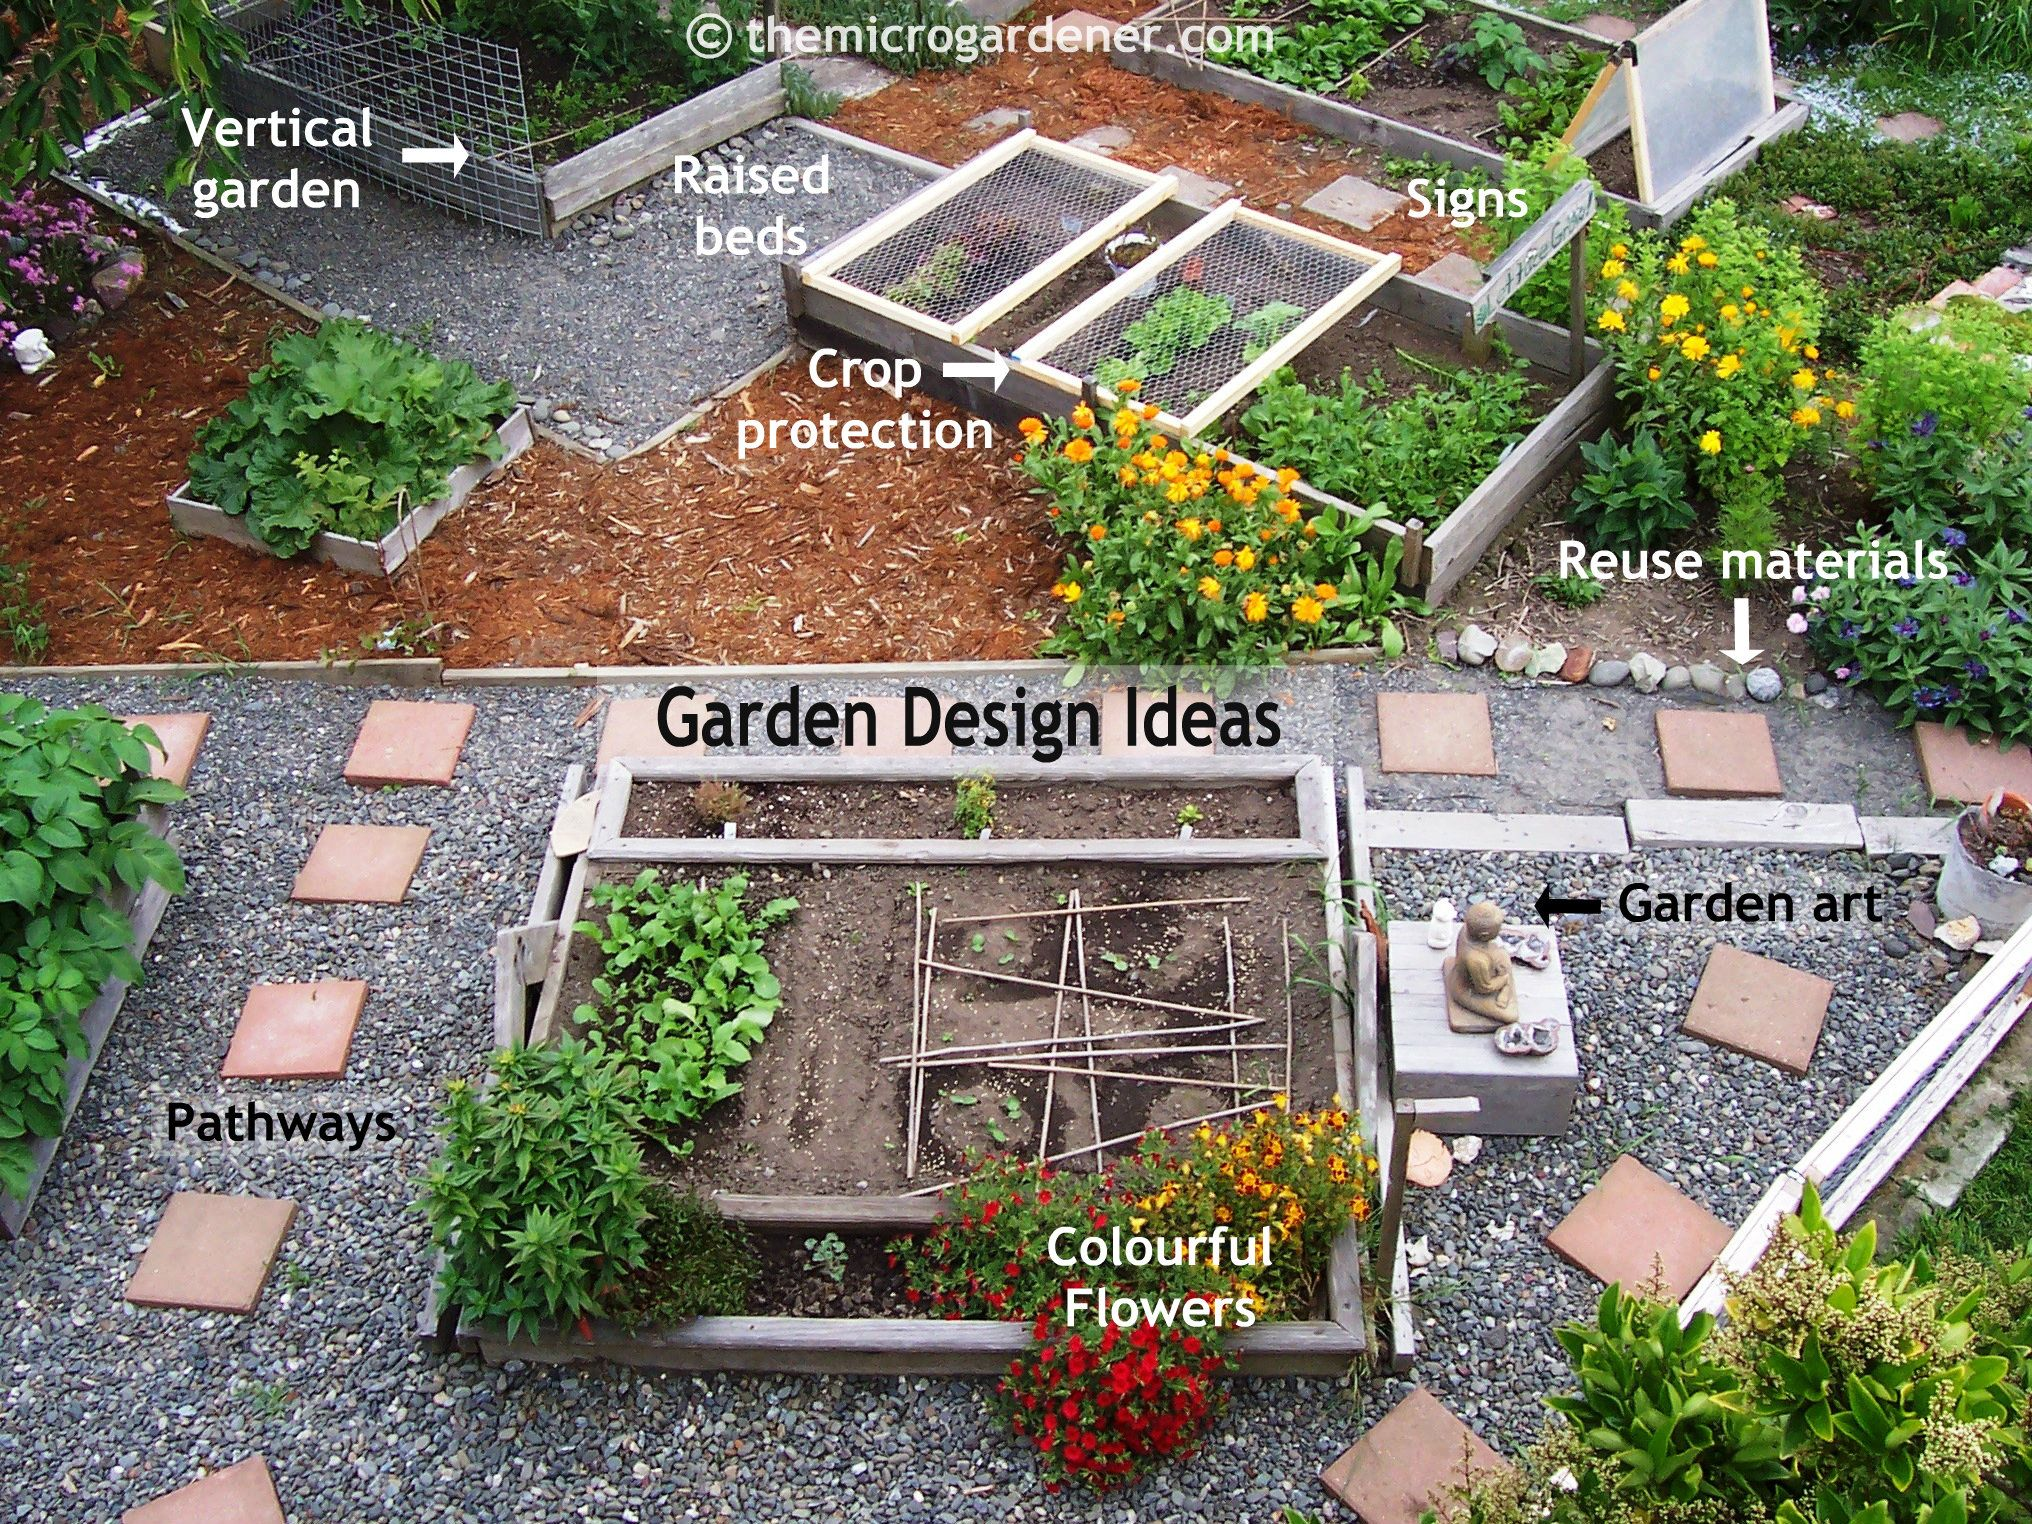 SMALL GARDEN DESIGN Got limited space or planning a Kitchen